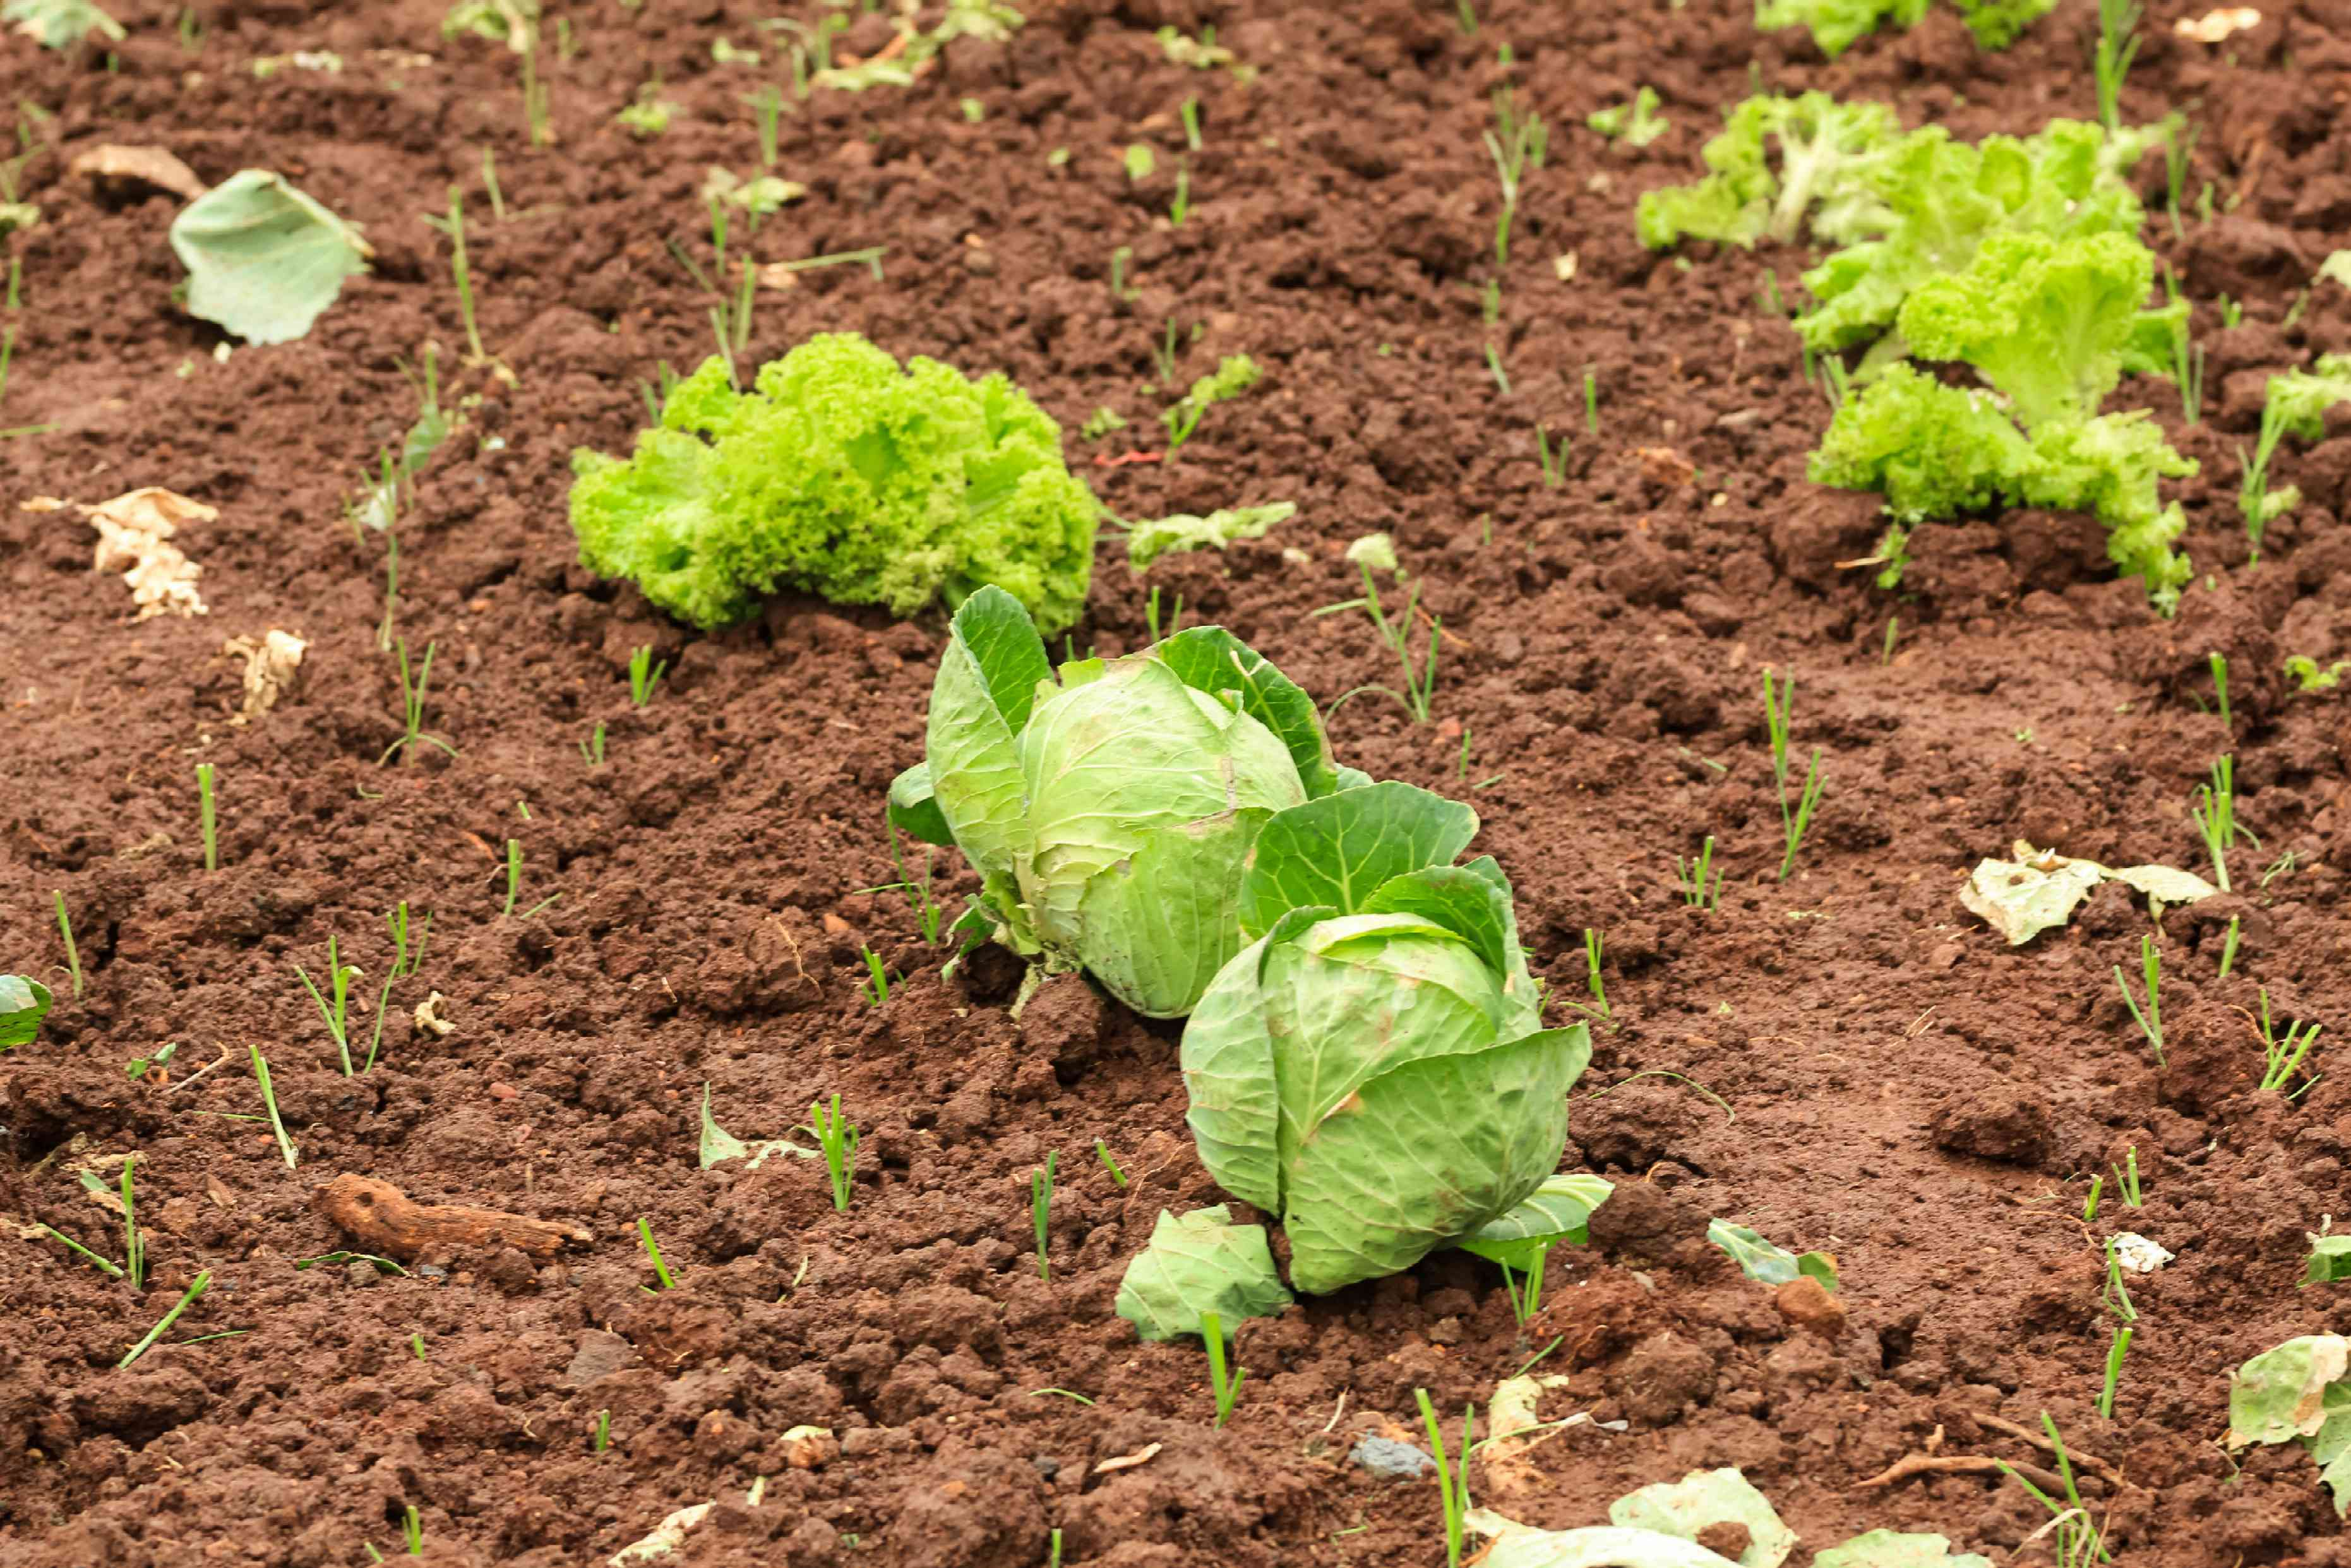 small cabbages in early stages of growing in brown dirt